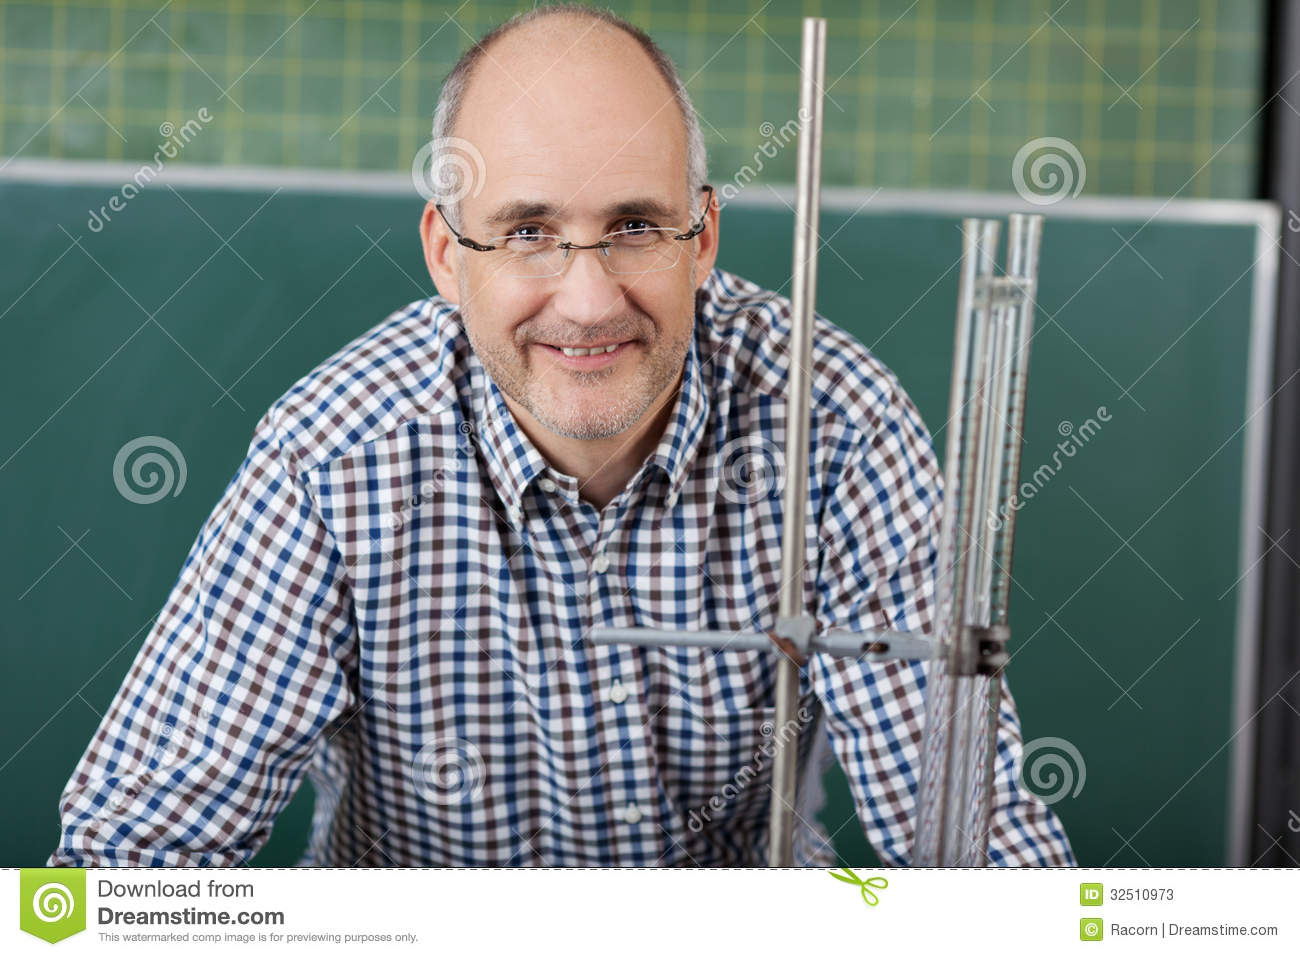 Male Teacher Giving Physics Lessons Stock Photos - Image: 32510973